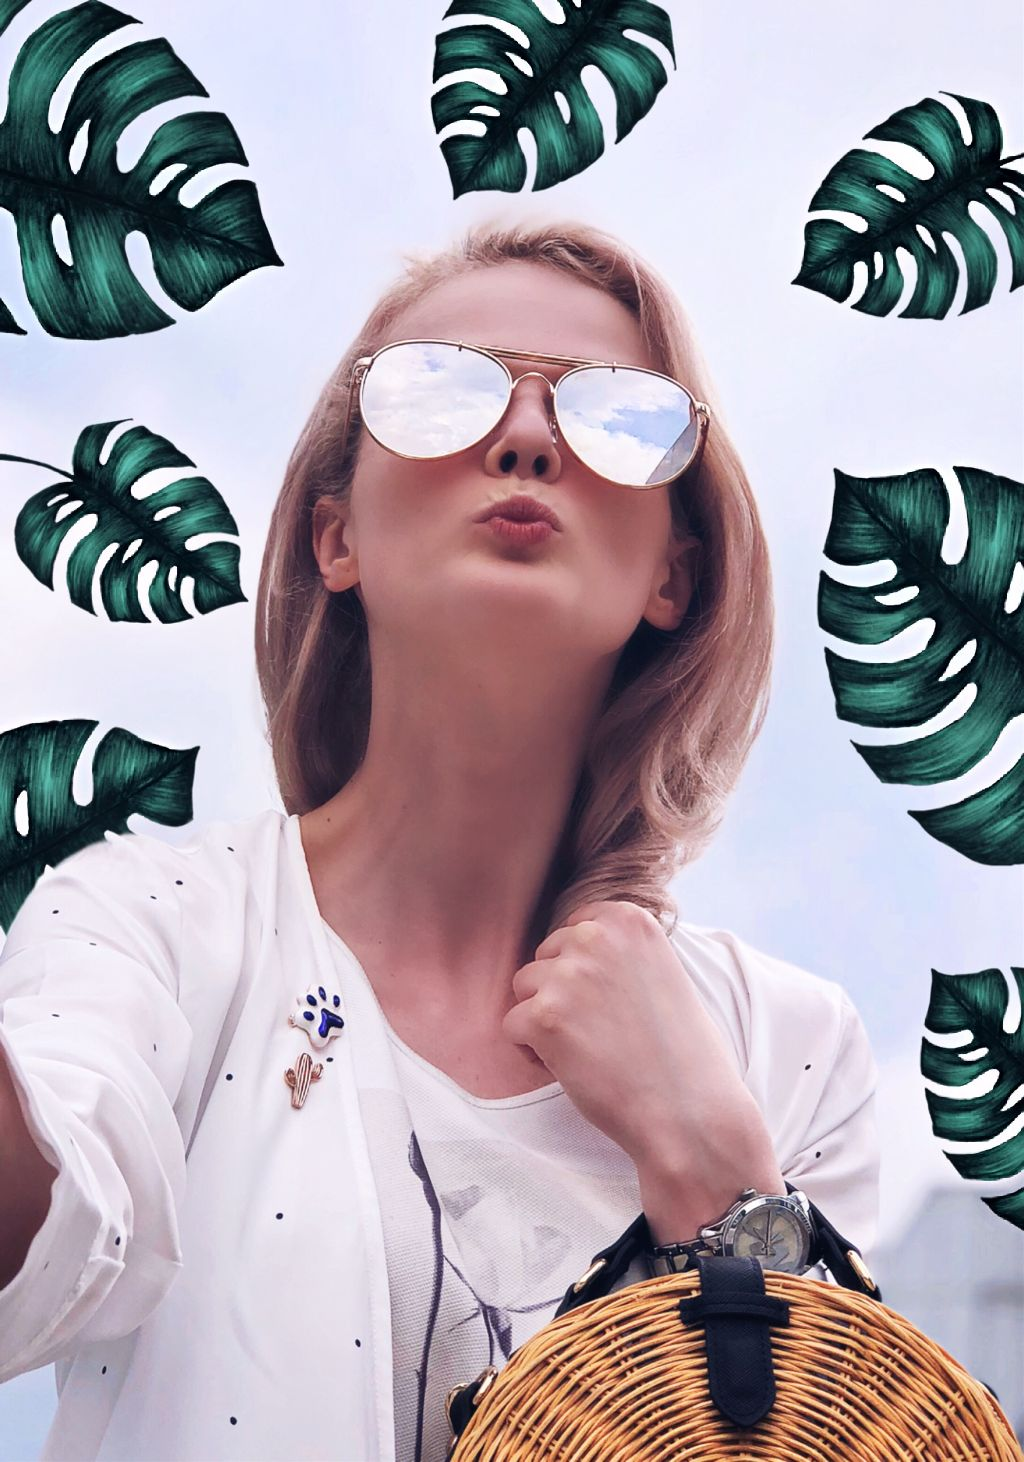 #freetoedit #interesting #girl #girly #spring #leaves #tropical #sunglasses #art #travel #sky #summer #stickers